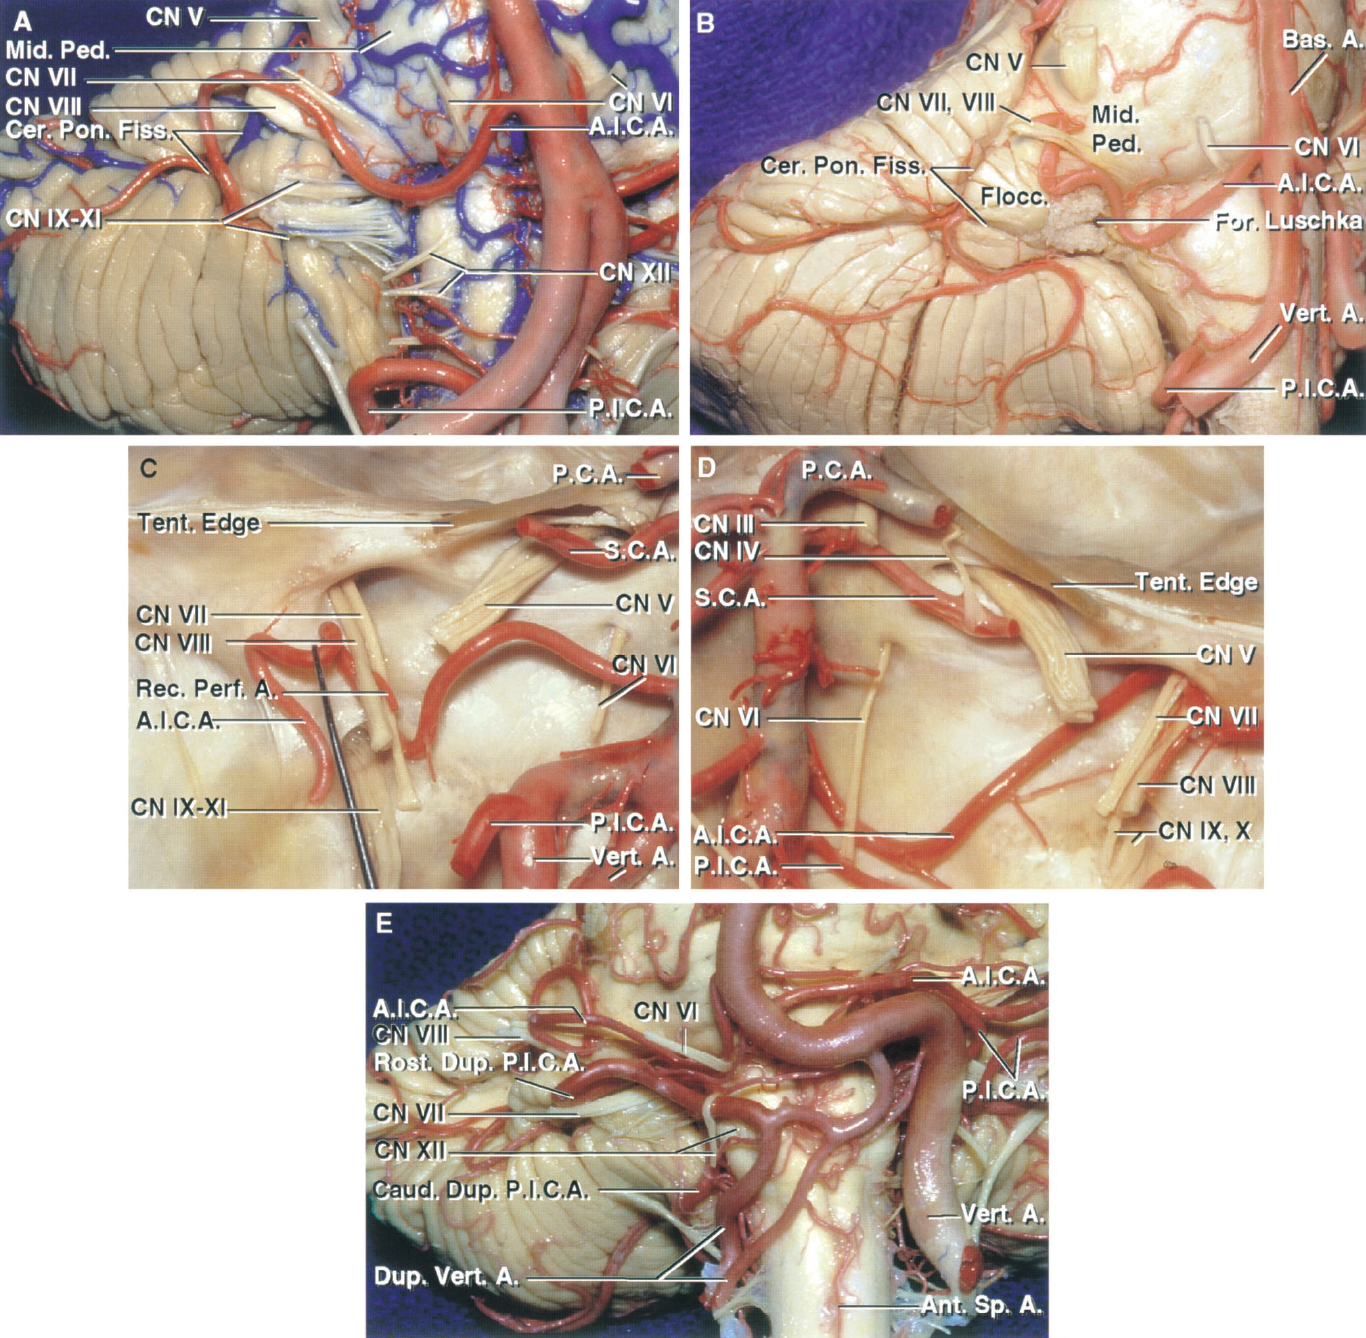 FIGURE 2.11. AICA relationships. A, anterolateral view of the brainstem and right petrosal cerebellar surface. The right AICA passes below the abducens and between the facial and vestibulocochlear nerves before reaching the cerebellopontine fissure and petrosal cerebellar surface. B, the right AICA arises just above the vertebrobasilar junction and passes below the pontomedullary junction before turning upward to reach the surface of the middle cerebellar peduncle. It passes above the floccular and along the cerebellopontine fissure to reach the petrosal surface. C and D, the cerebellum and brainstem have been removed to show the relationship of the AICAs to the cranial nerves and internal acoustic meatus. C, the left AICA passes above the abducens nerve and below the facial and vestibulocochlear nerves, where it gives rise to a recurrent perforating branch to the brainstem. The SCA passes above the posterior trigeminal root. D, the right AICA loops into the porus of the meatus and between the facial and vestibulocochlear nerves. E, another brainstem and cerebellum. The right vertebral artery is a duplicate artery and gives rise to duplicate PICAs. The AICAs arise from the lower part of the basilar artery. The left AICA is larger than the right. The rostral duplicate PICA loops upward into the cerebellopontine angle. The left vertebral artery loops upward into the left cerebellopontine angle. A., artery; A.I.C.A., anteroinferior cerebellar artery; Ant., anterior; Bas., basilar; Caud., caudal; Cer. Pon., cerebellopontine; CN, cranial nerve; Dup., duplicate; Fiss., fissure; Flocc., flocculus; For., foramen; Mid., middle; P.C.A., posterior cerebral artery; Ped., peduncle; Perf., perforating; P.I.C.A., posteroinferior cerebellar artery; Pon., pontine; Rec., recurrent; Rost., rostral; S.C.A., superior cerebellar artery; Sp., spinal; Tent., tentorial; Vert., vertebral.